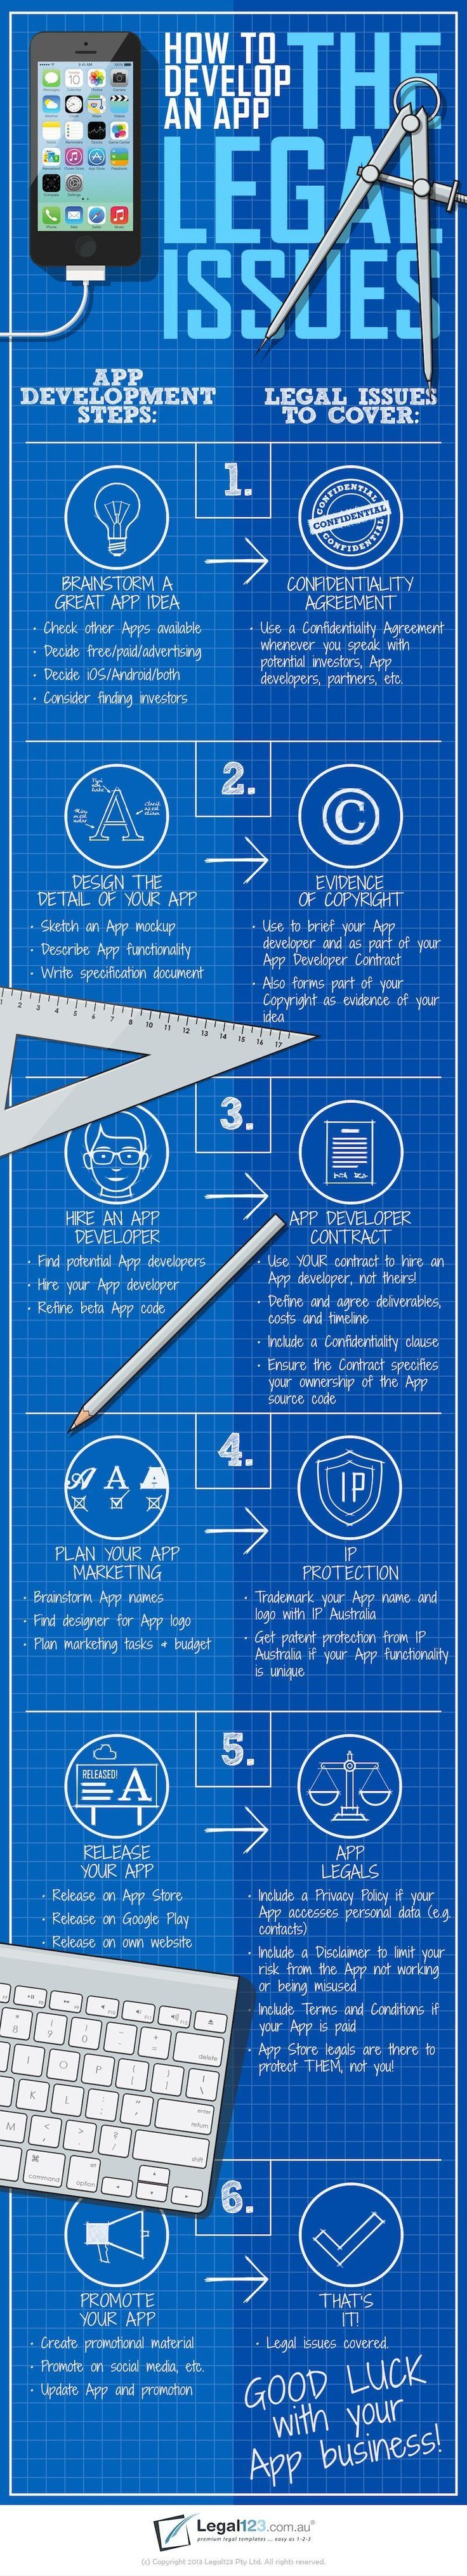 This infographic will walk you through the legal bases you need cover for each step of app development.